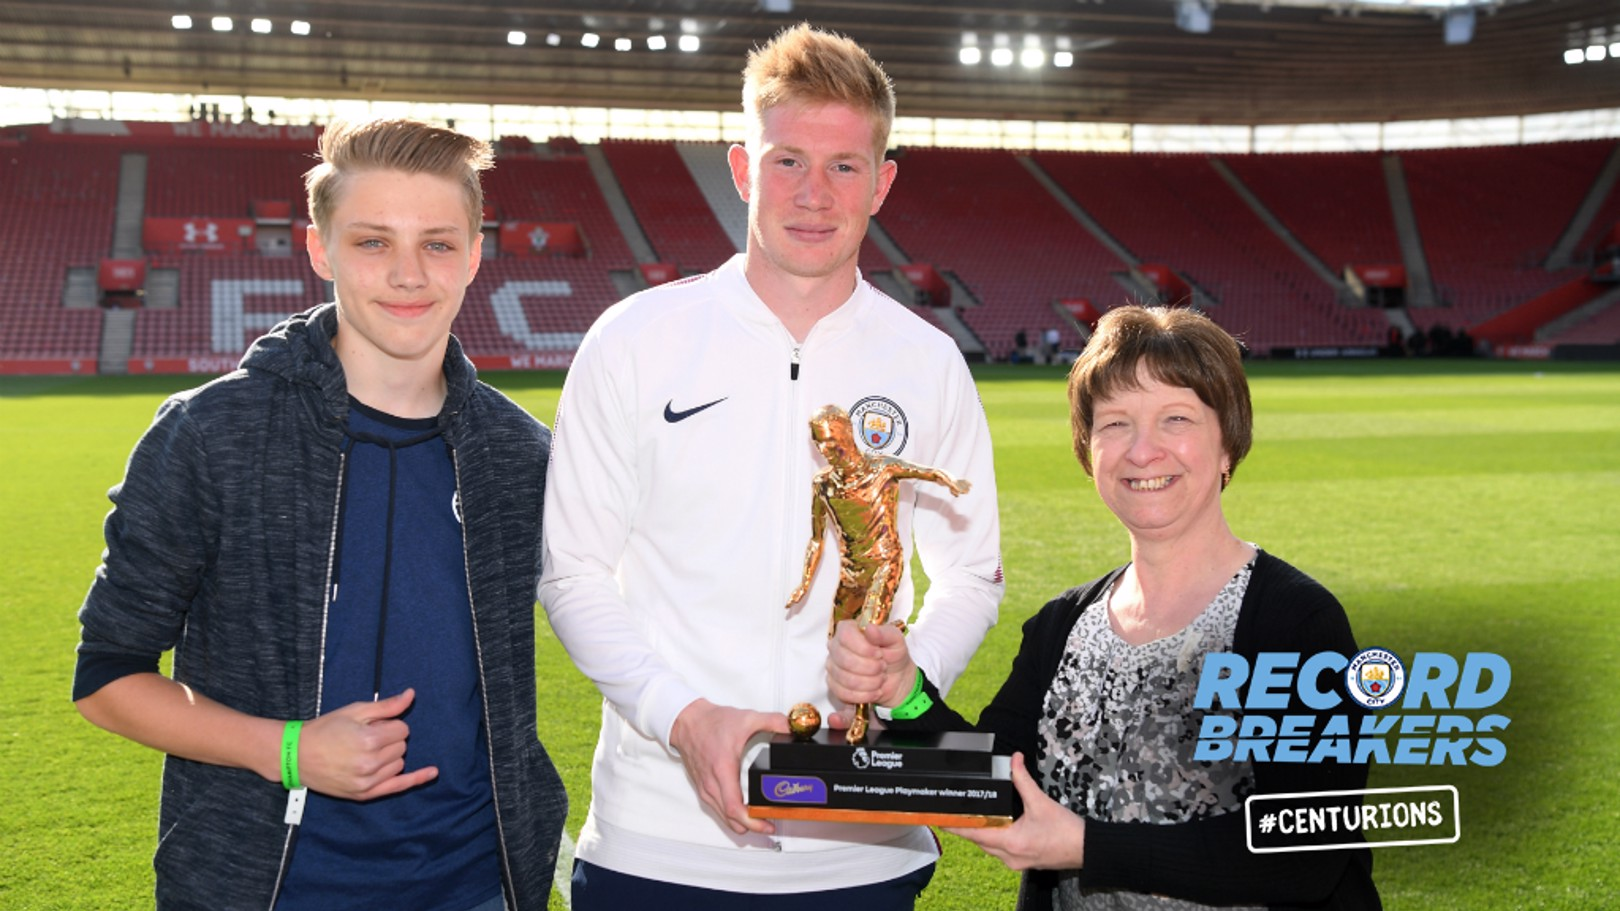 ASSIST KING: Kevin De Bruyne clinched the Premier League Playmaker of the Year Award